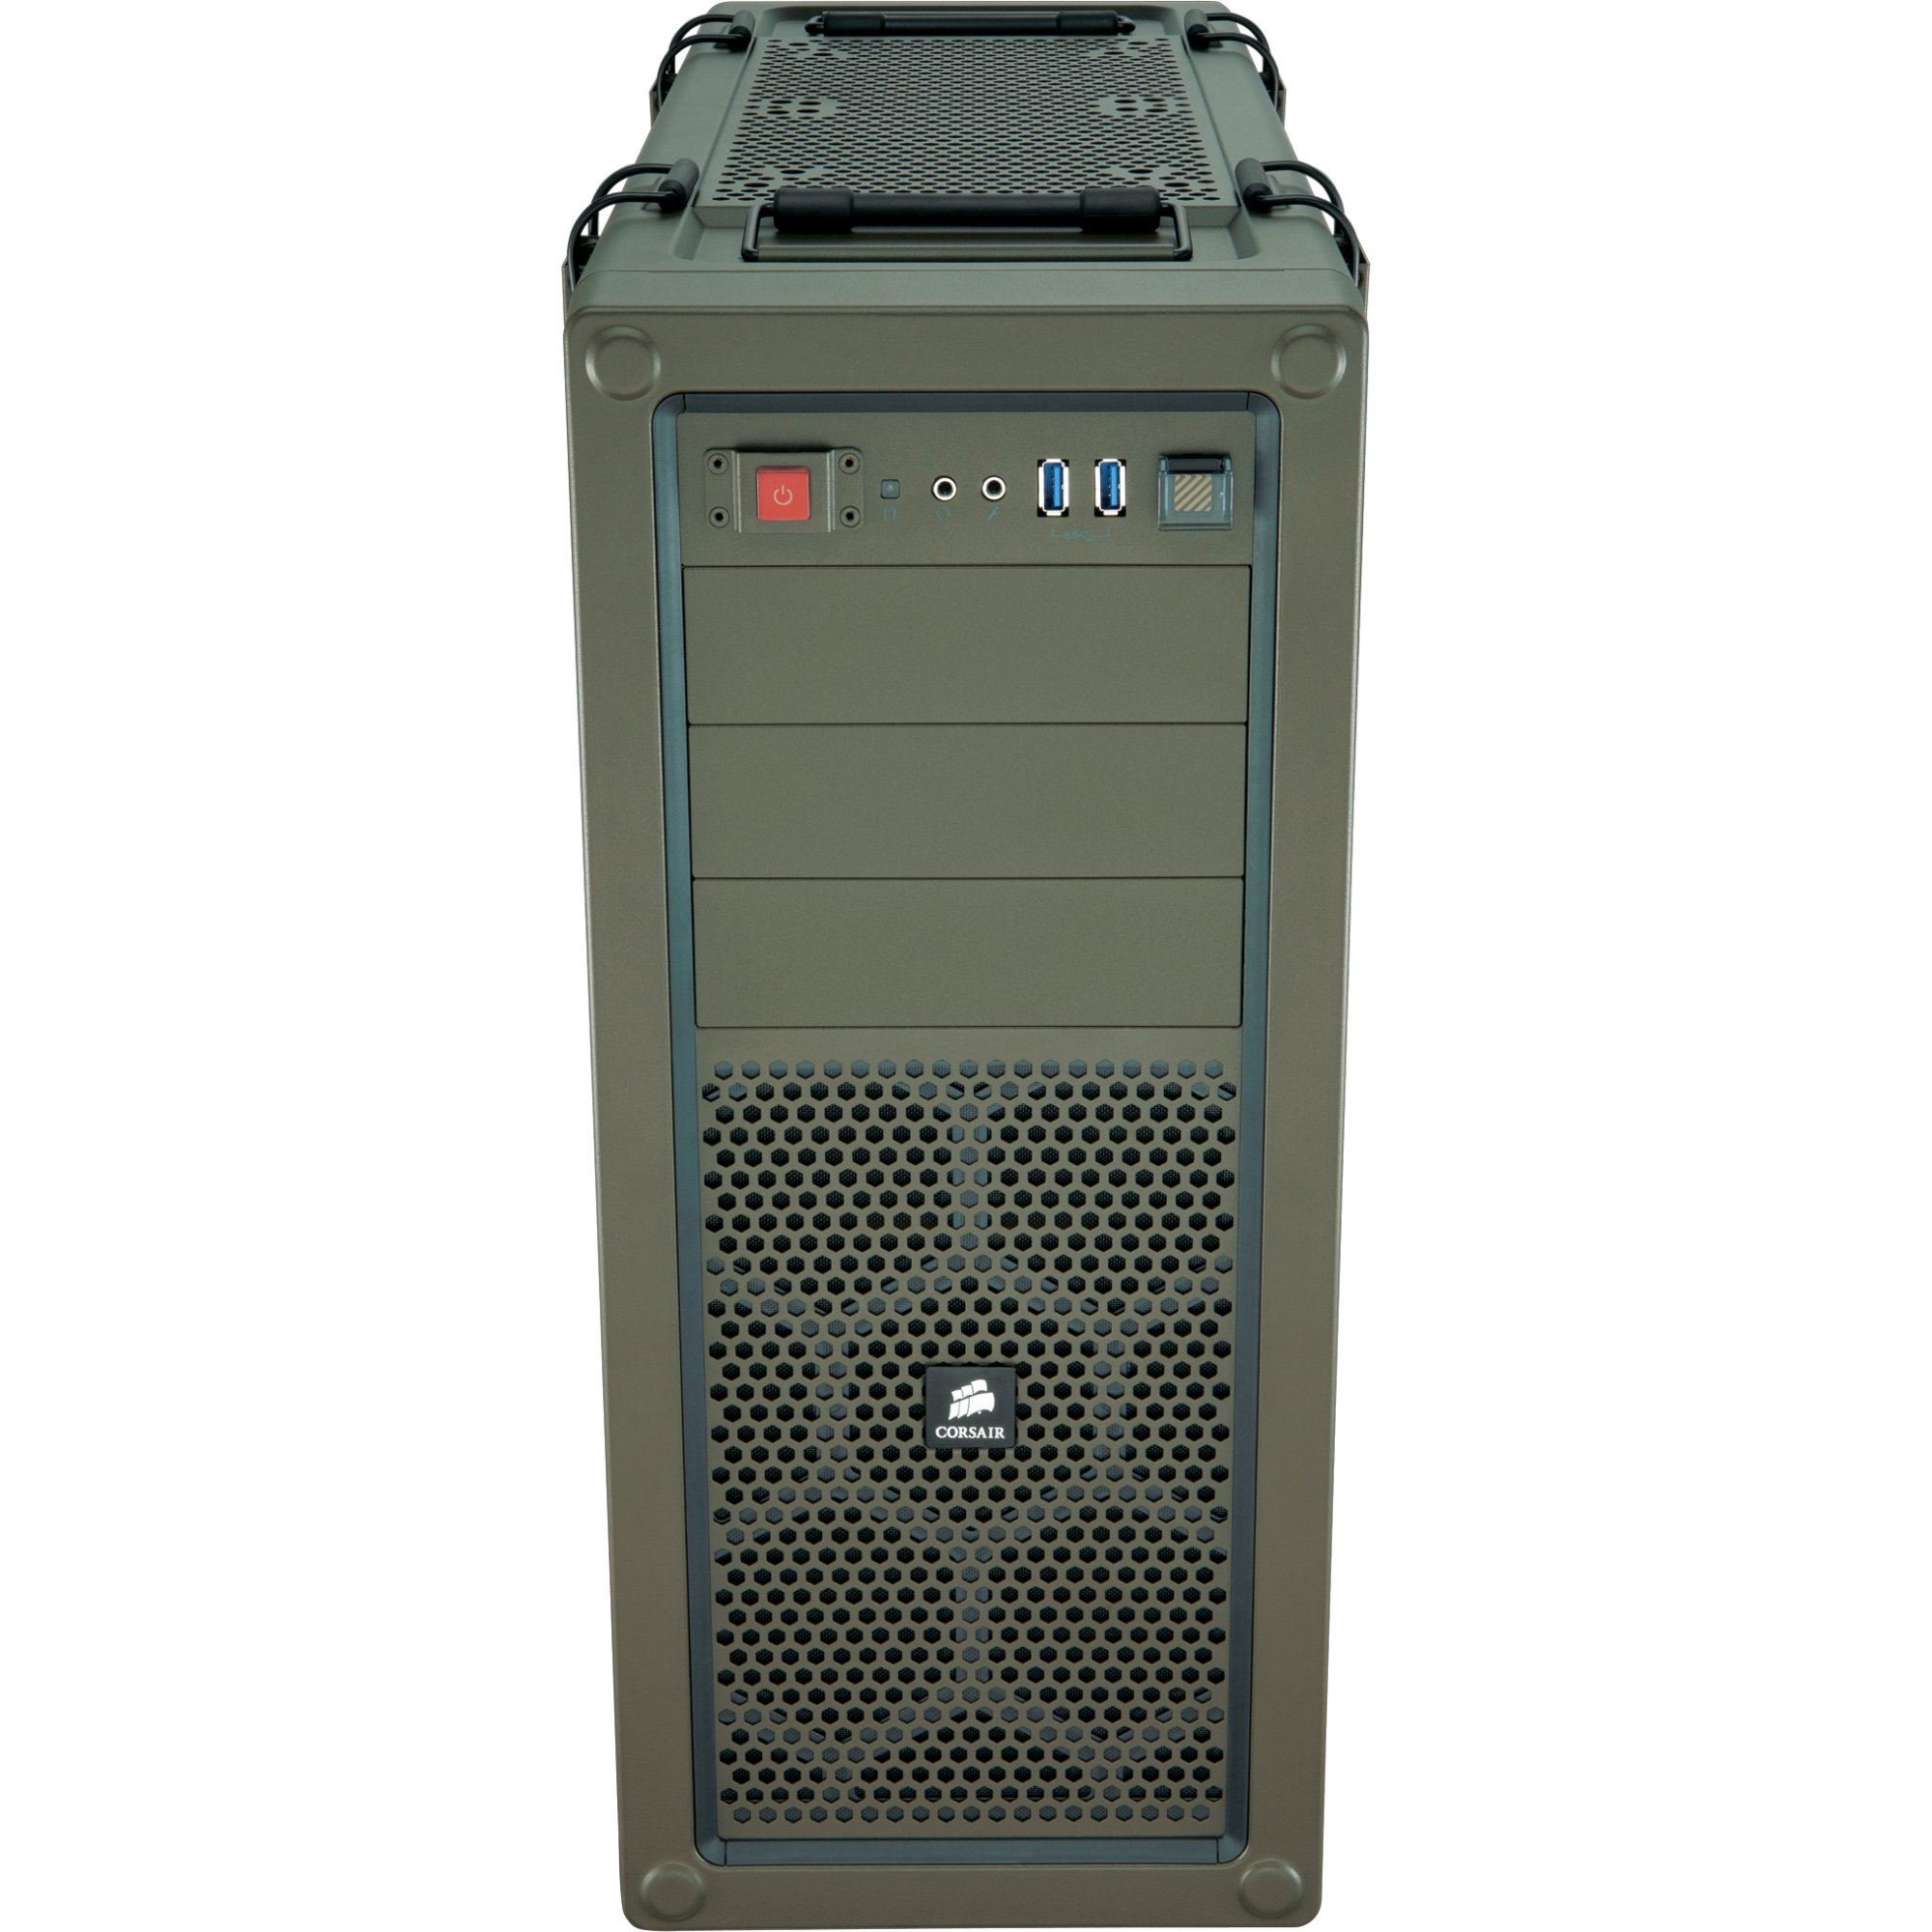 Vengeance C70 Mid-Tower Gaming Case - Military Green - Mid-tower - Military Green - Steel - 9 x Bay - 3 x Fan(s) Installed - ATX Micro ATX Motherboard Supported